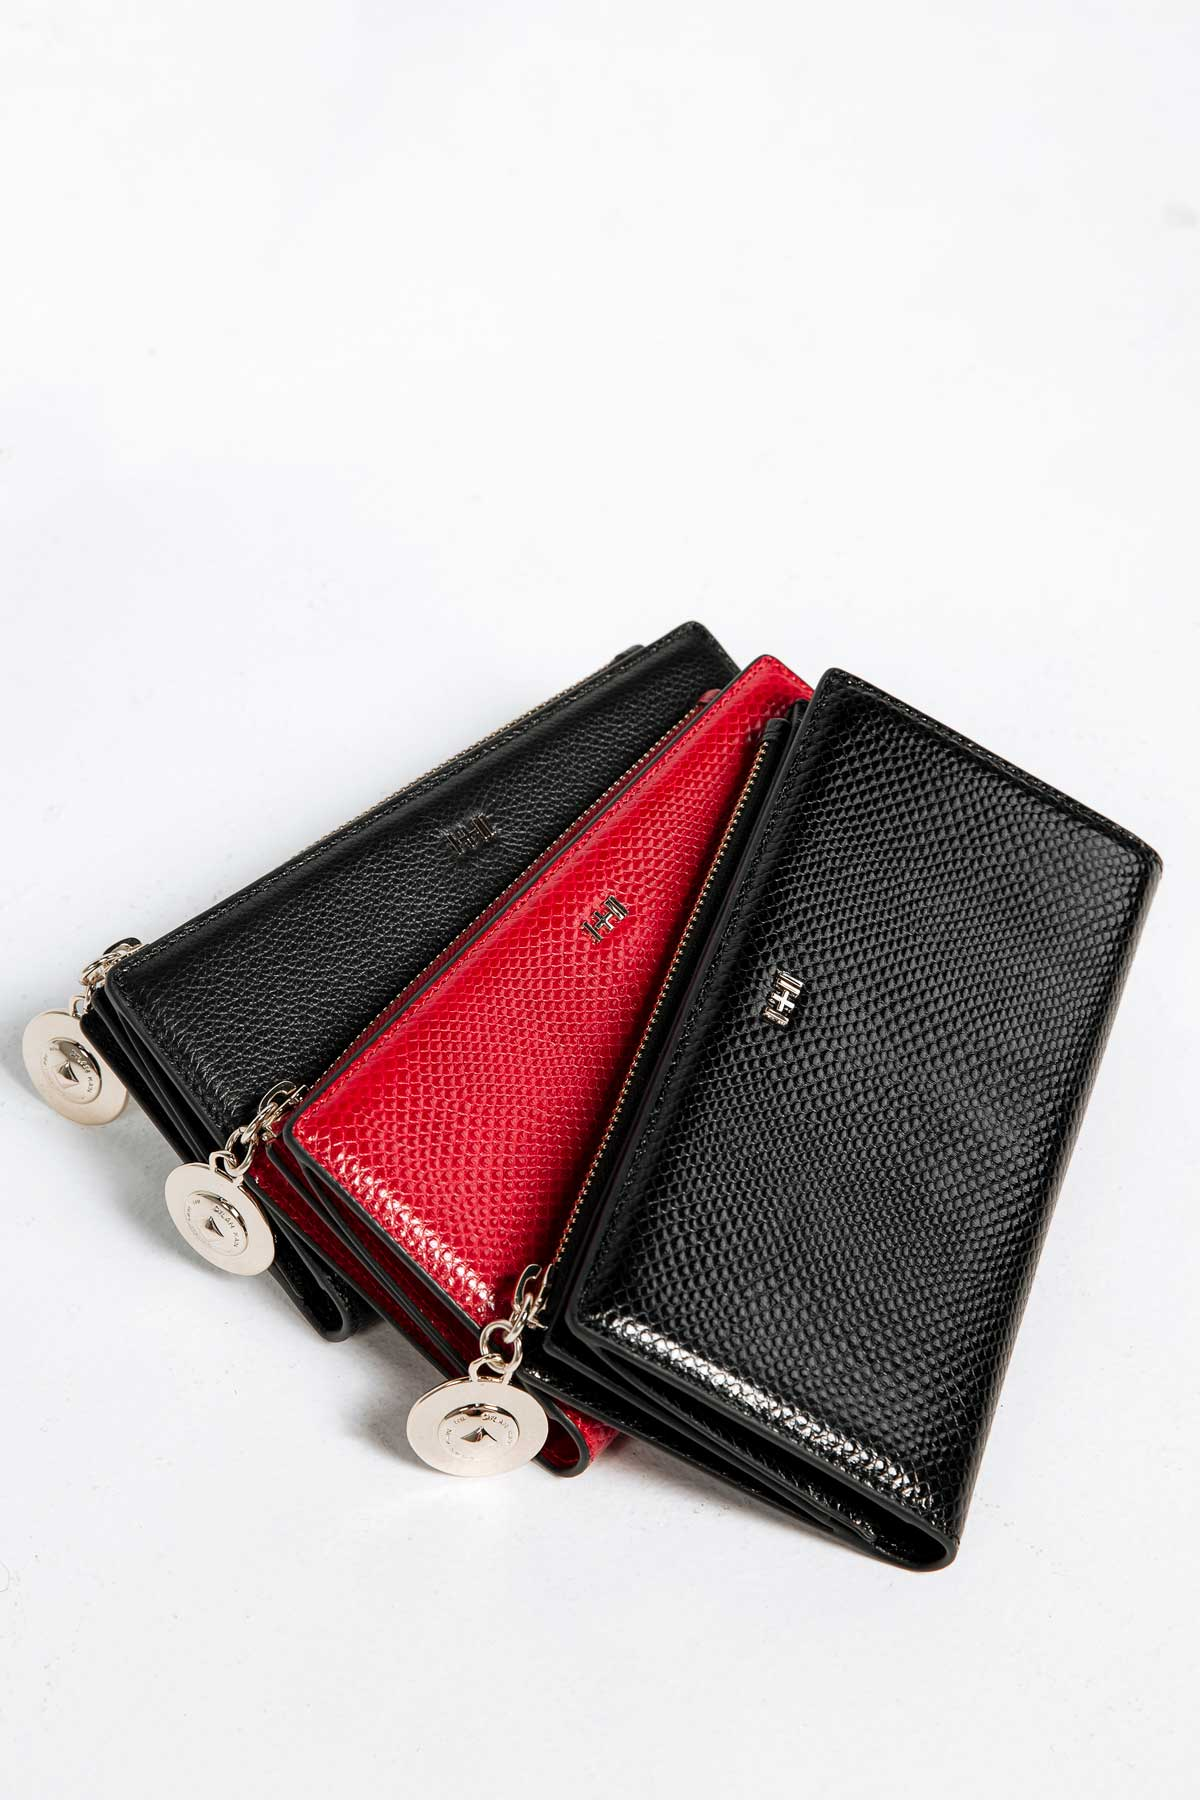 Dylan Kain Mad Love Wallet Red Leather with Light Gold Hardware